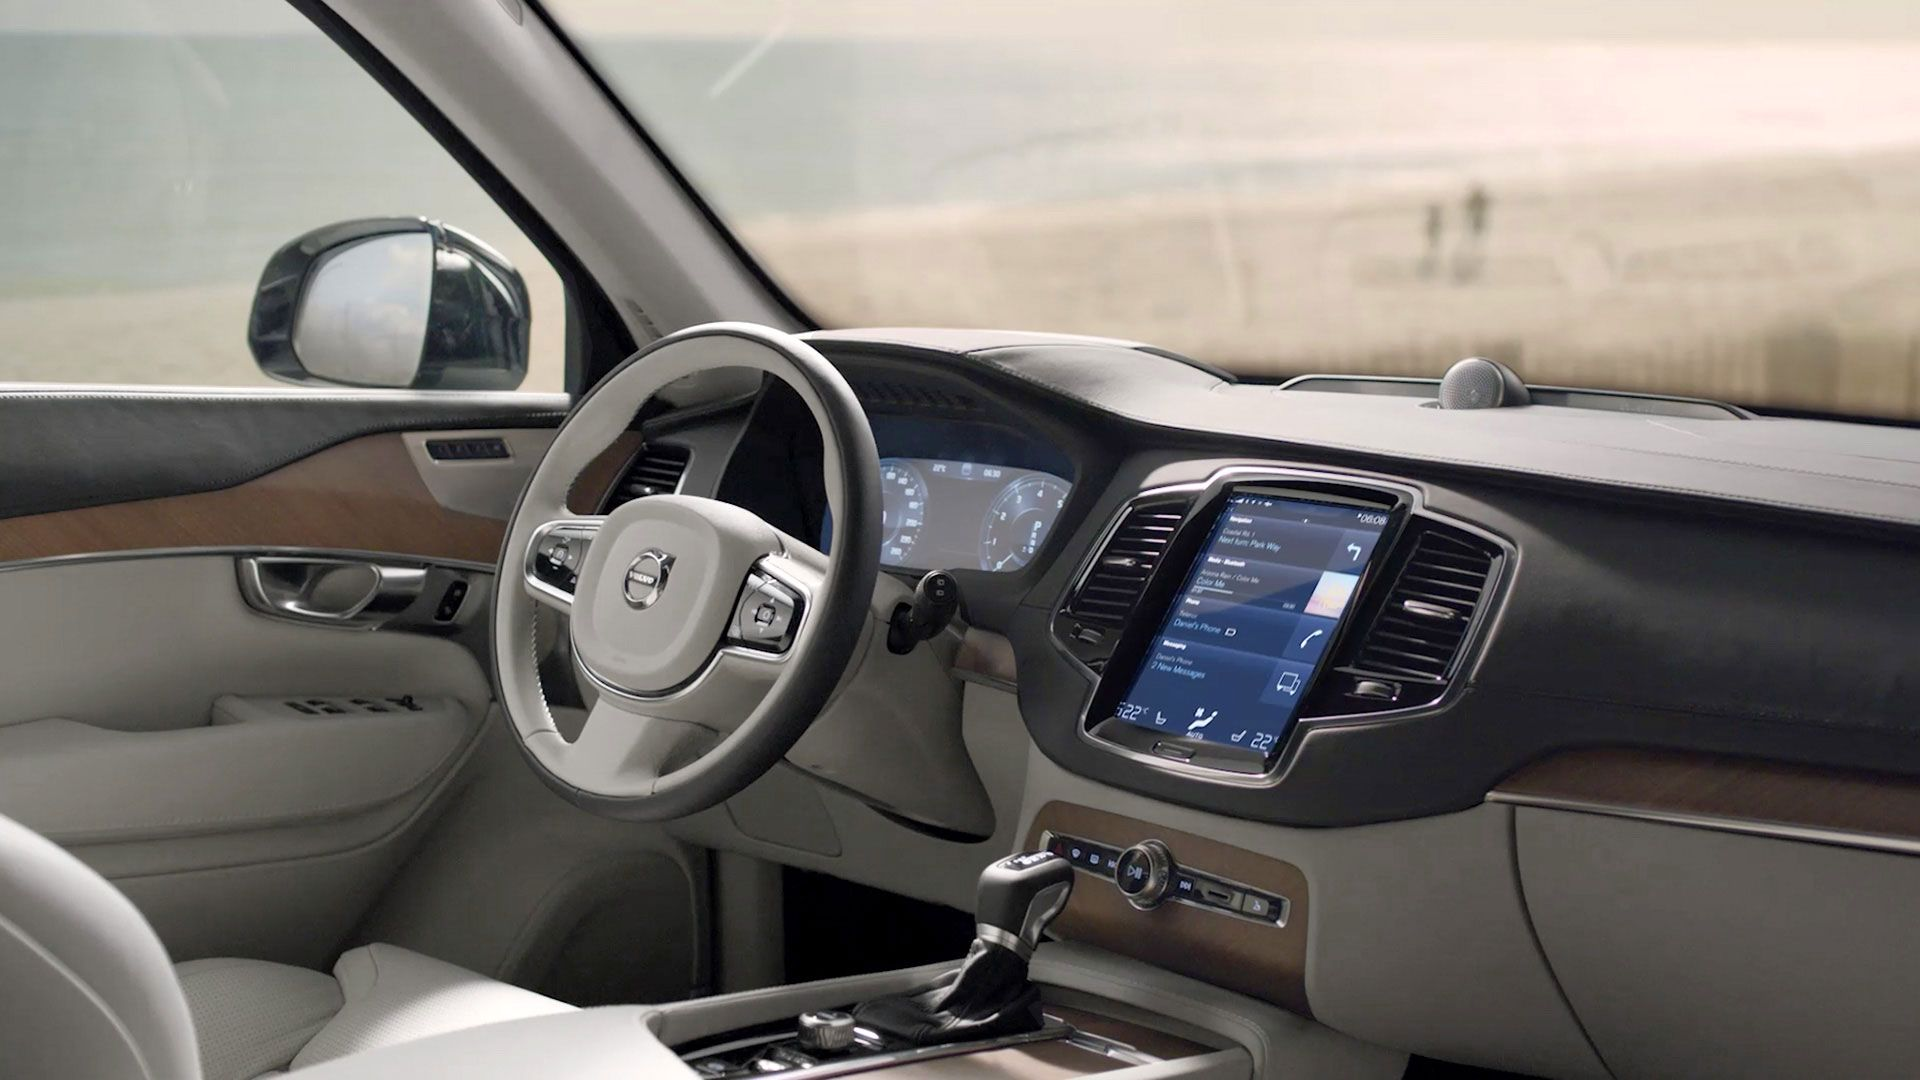 fantastic-design-of-the-white-steering-wheels-ideas-with-white-seats-and-black-dash-ideas-as-the-volvo-s90-2016-interior